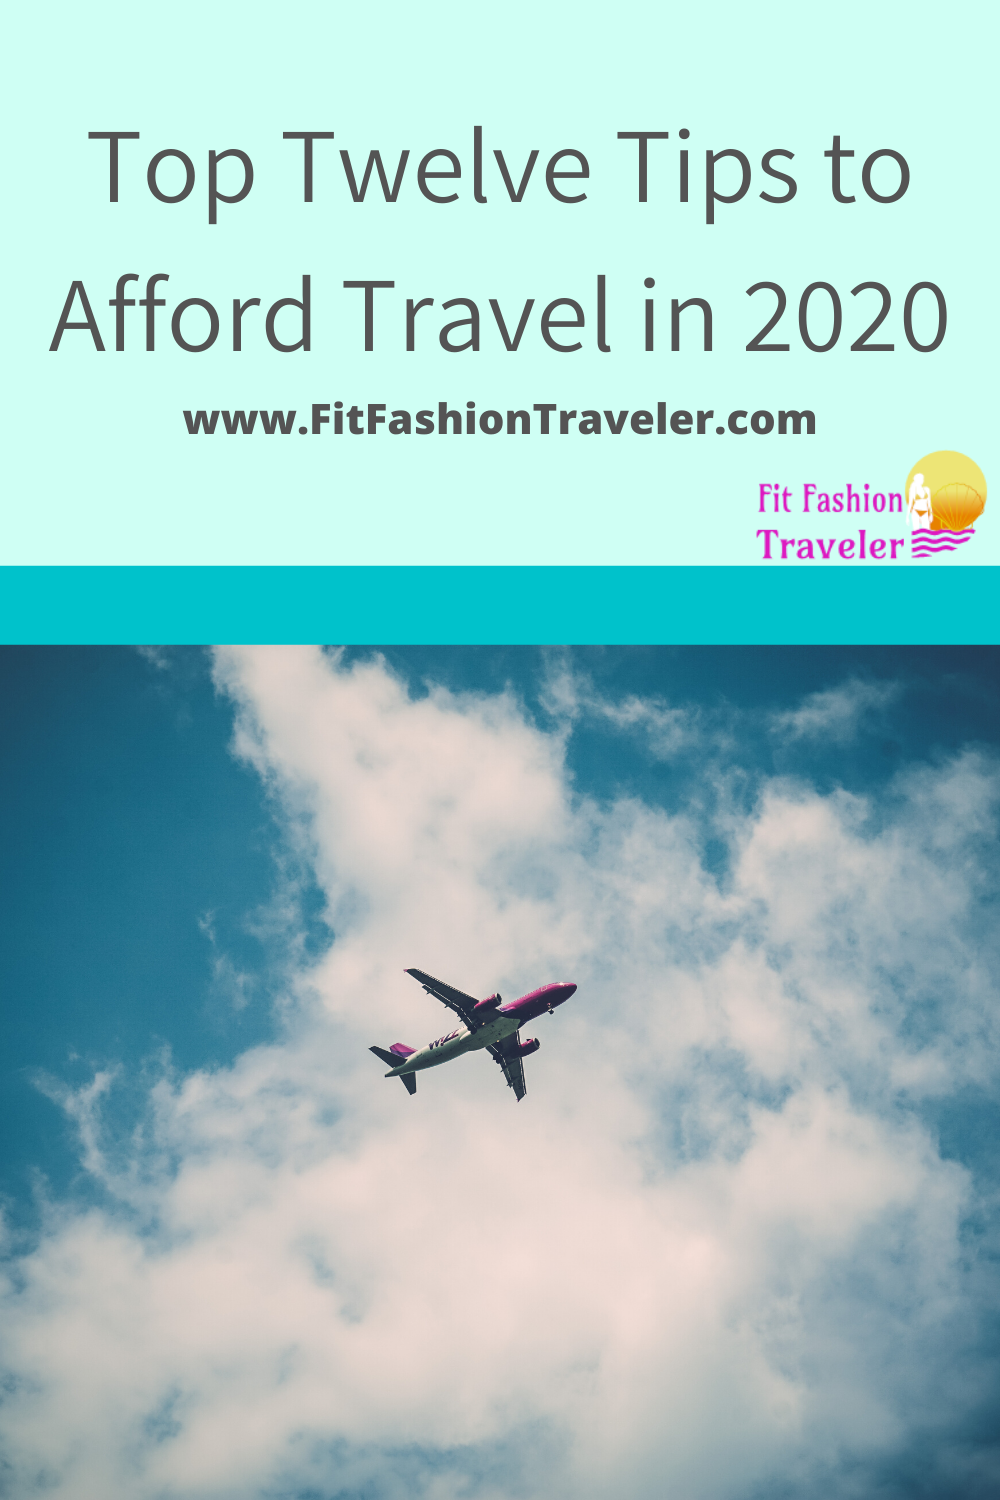 Best 12 Travel Tips for Millennials to Afford Travel in 2020